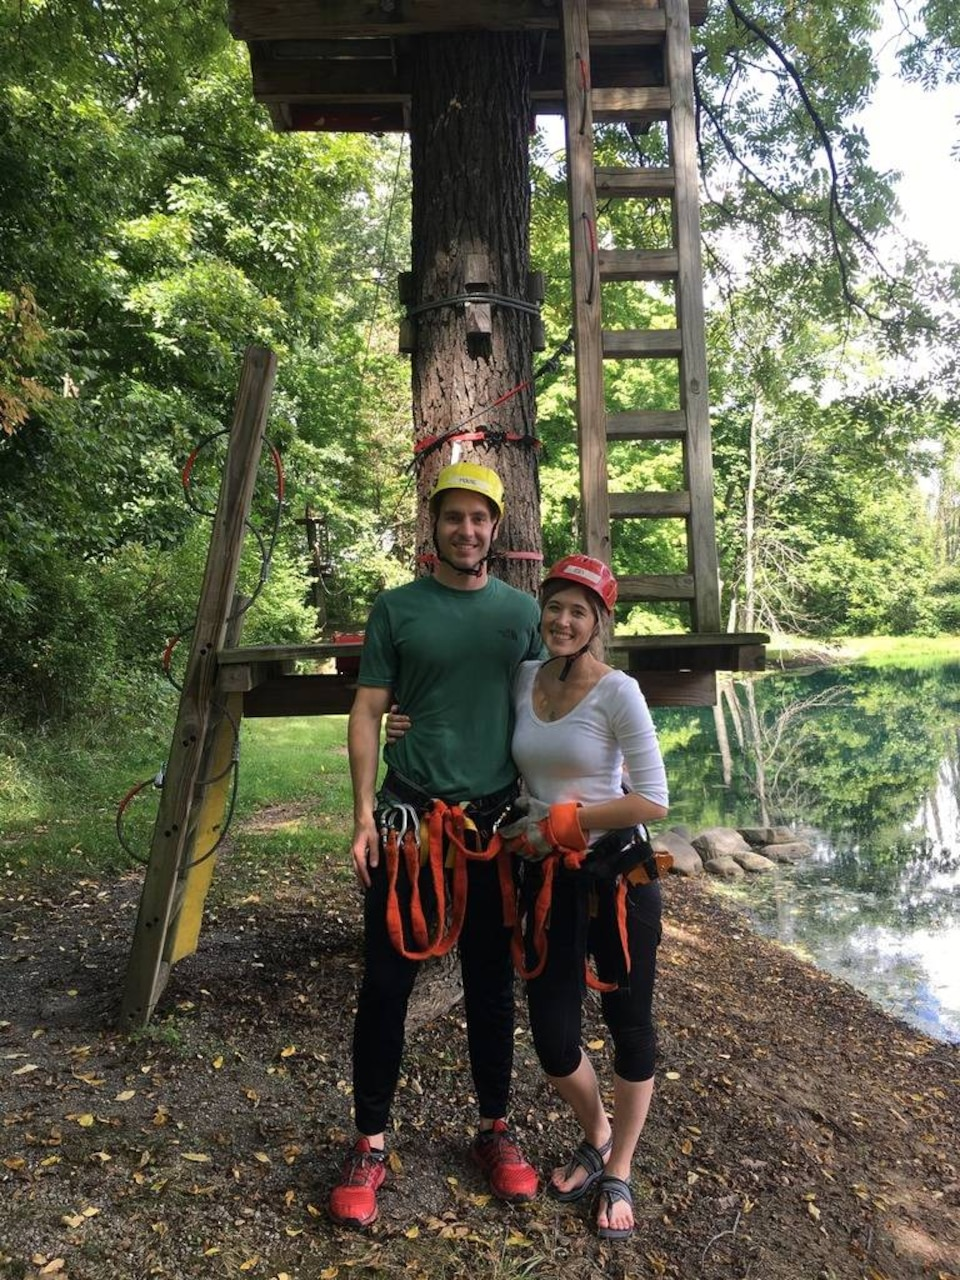 A man and woman wearing helmets stand outdoors in front of a tree. The tree has wooden platforms and ladders attached to its trunk.